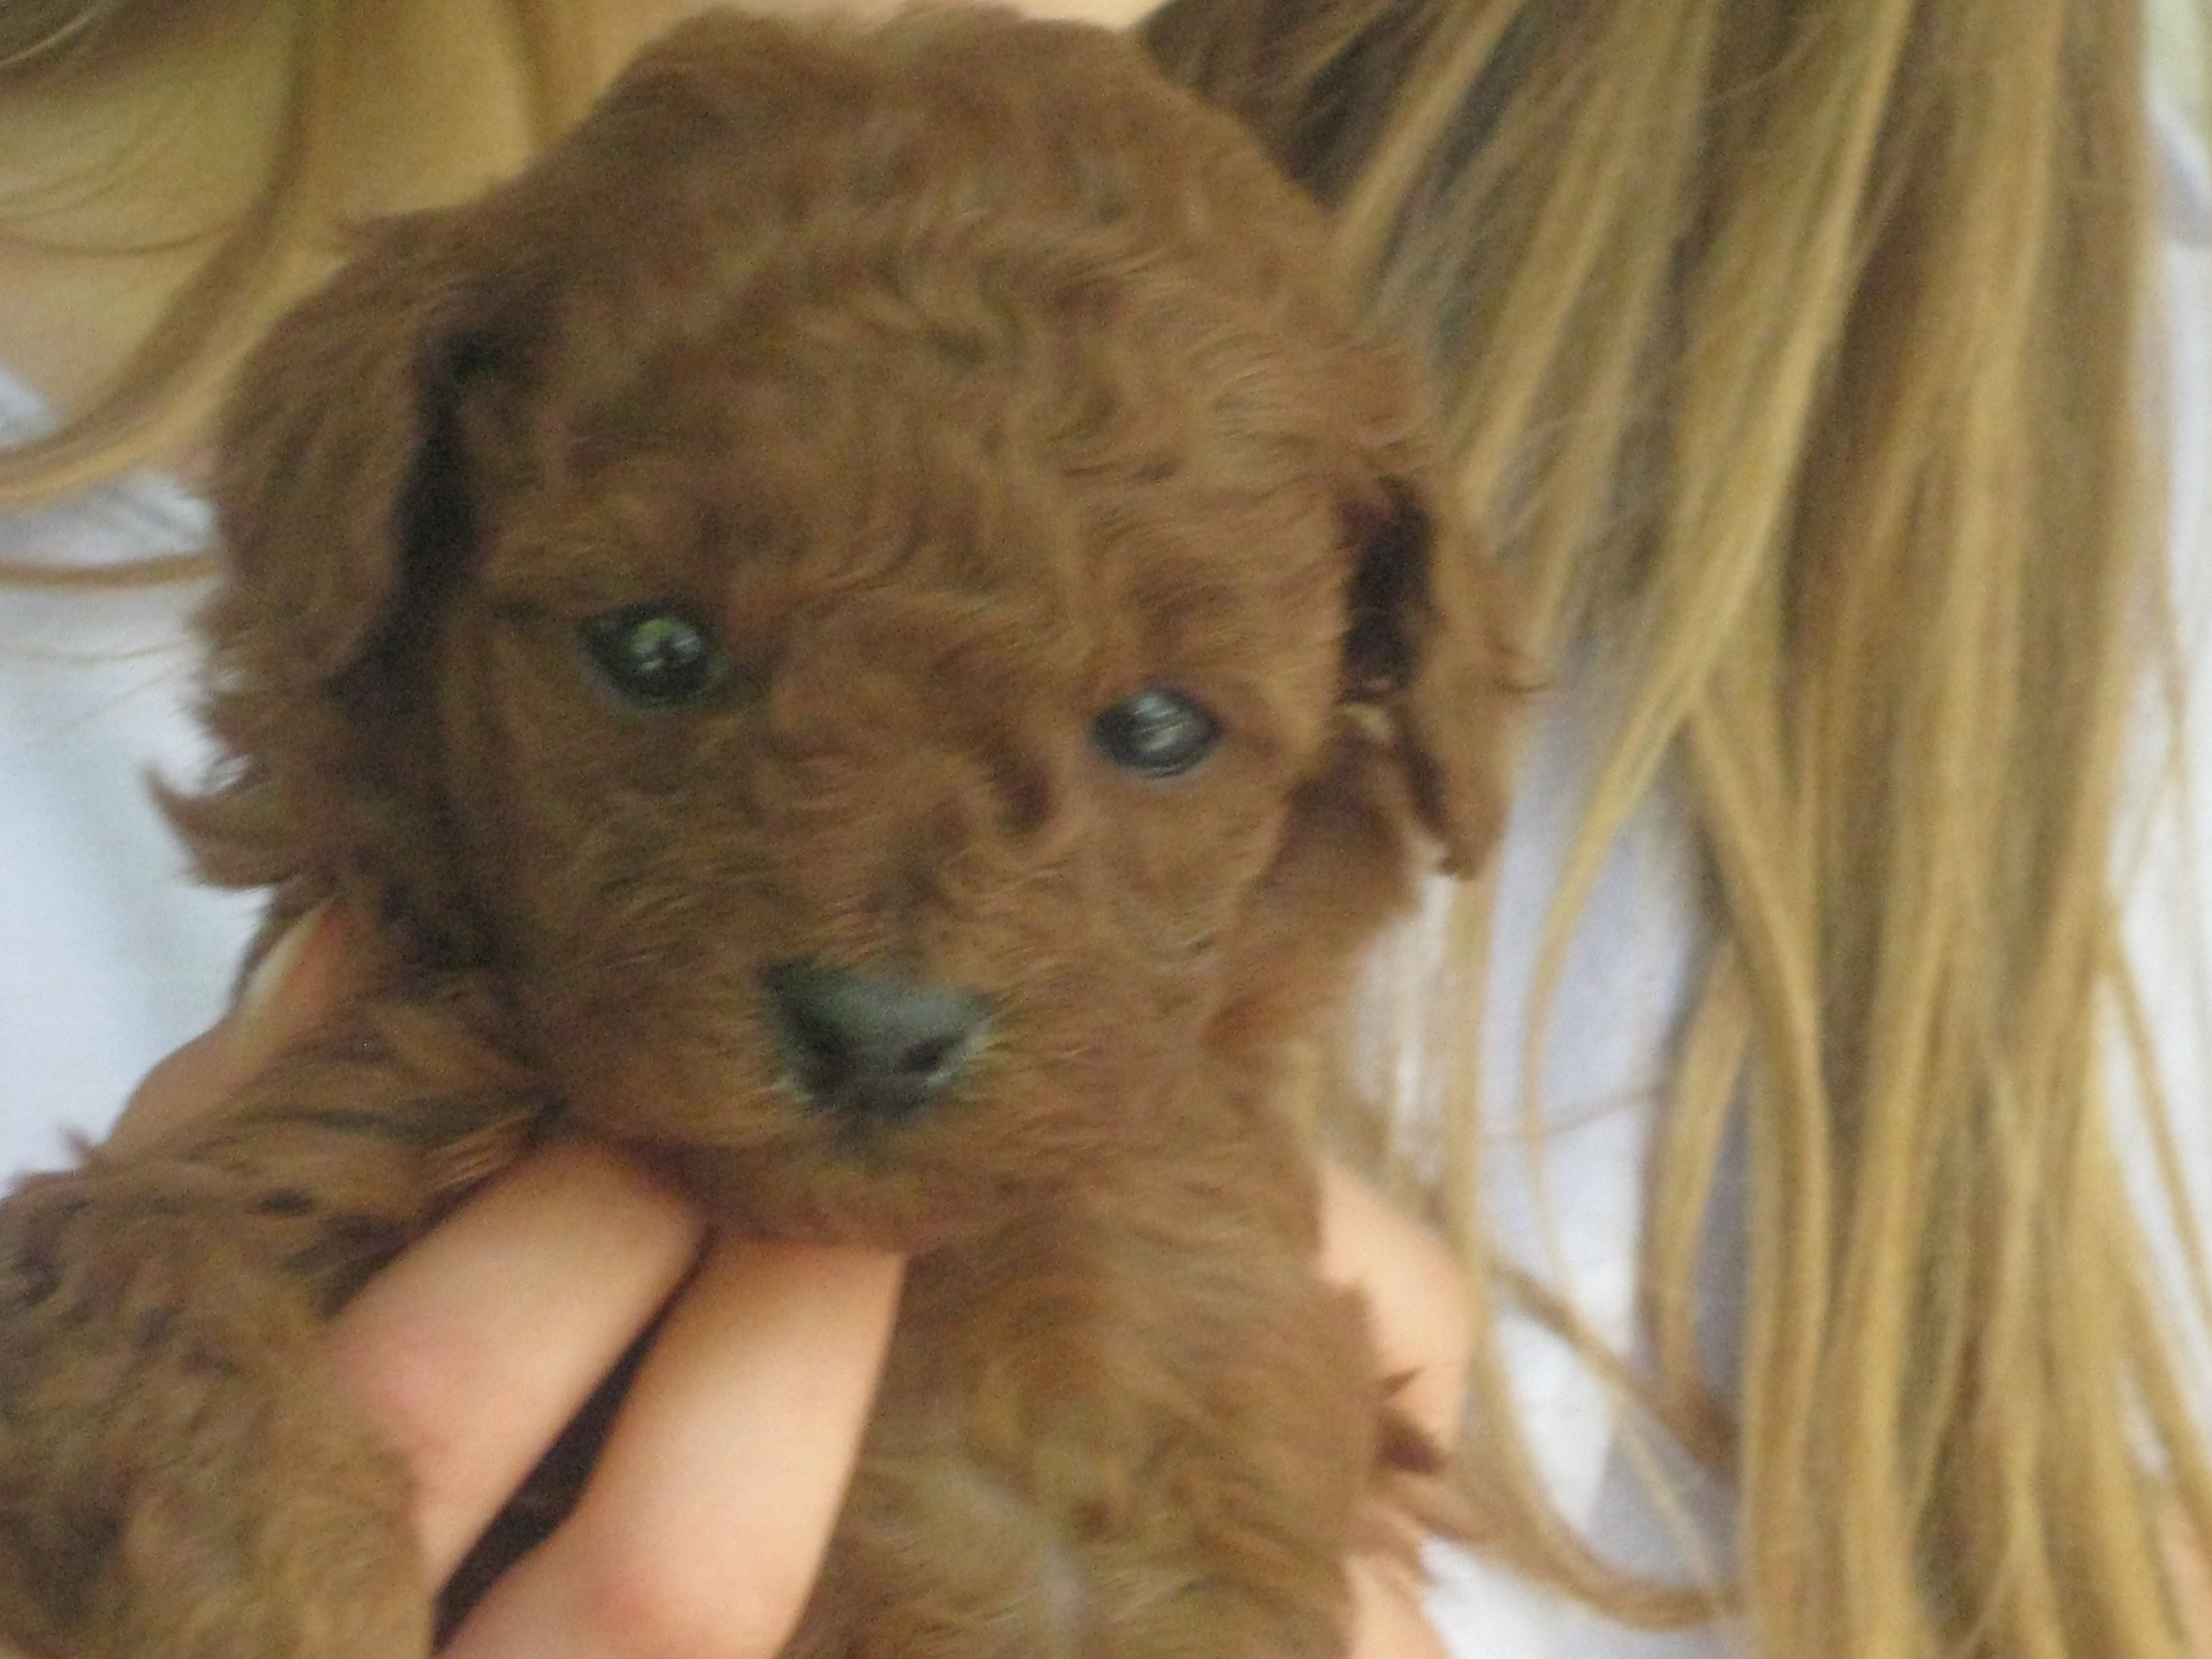 For Sale Illinois Breeder Toy Poodle Puppies Miniature Poodles Puppy Moyen Poodle Puppies Chicago Peoria Blo Toy Poodle Puppies Moyen Poodle Poodle Puppy